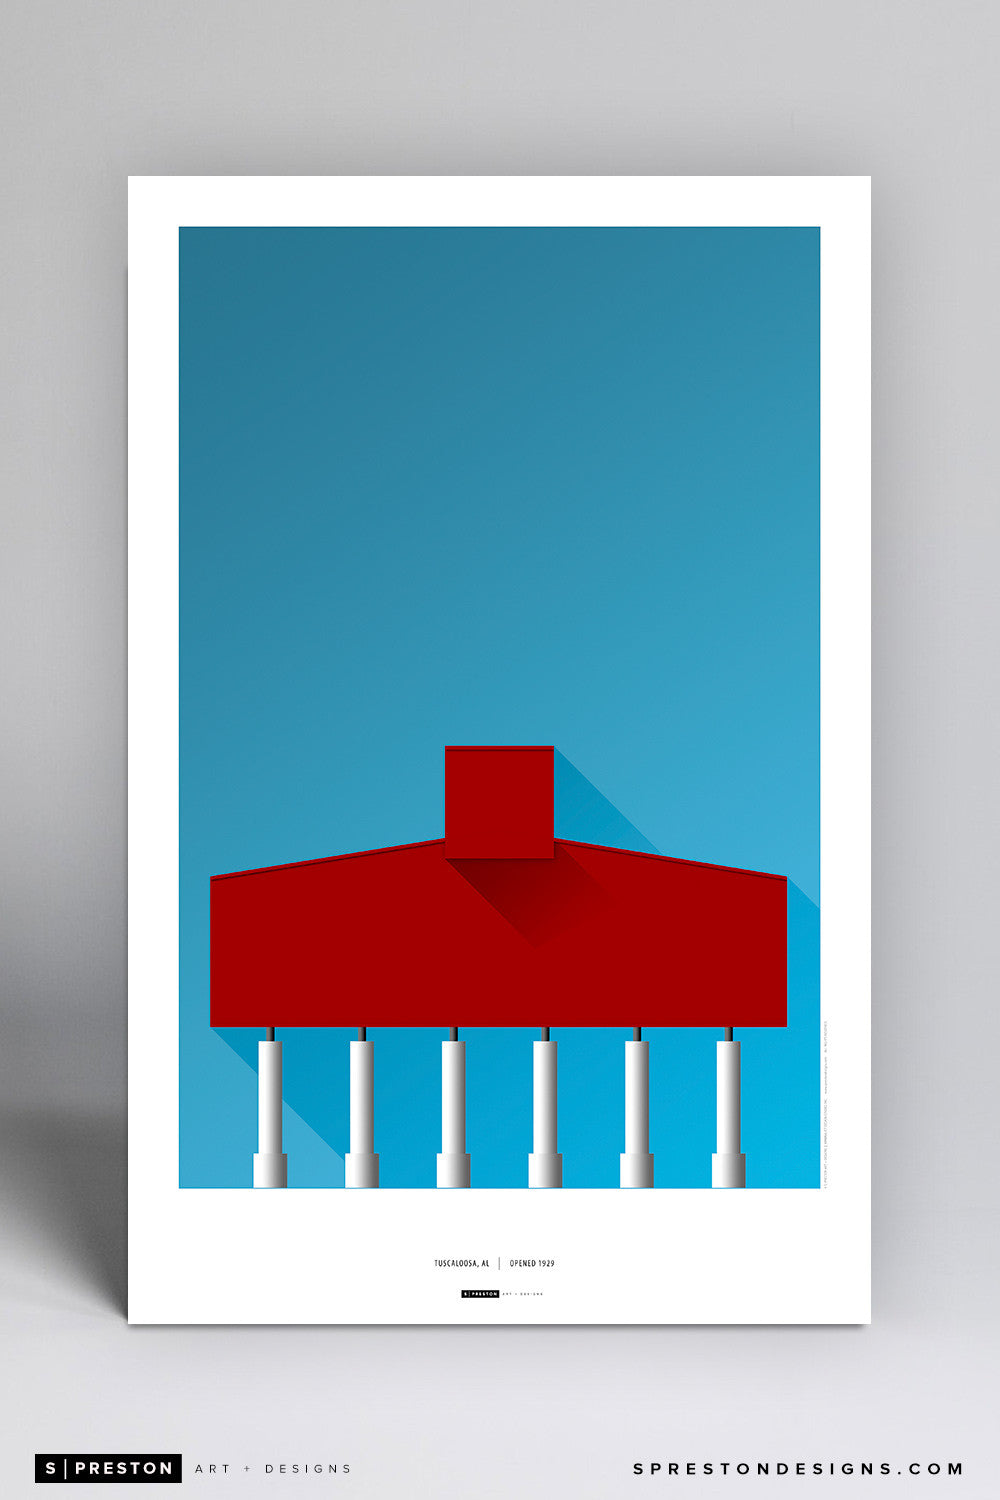 Minimalist Bryant-Denny Stadium Poster Print University of Alabama - S Preston